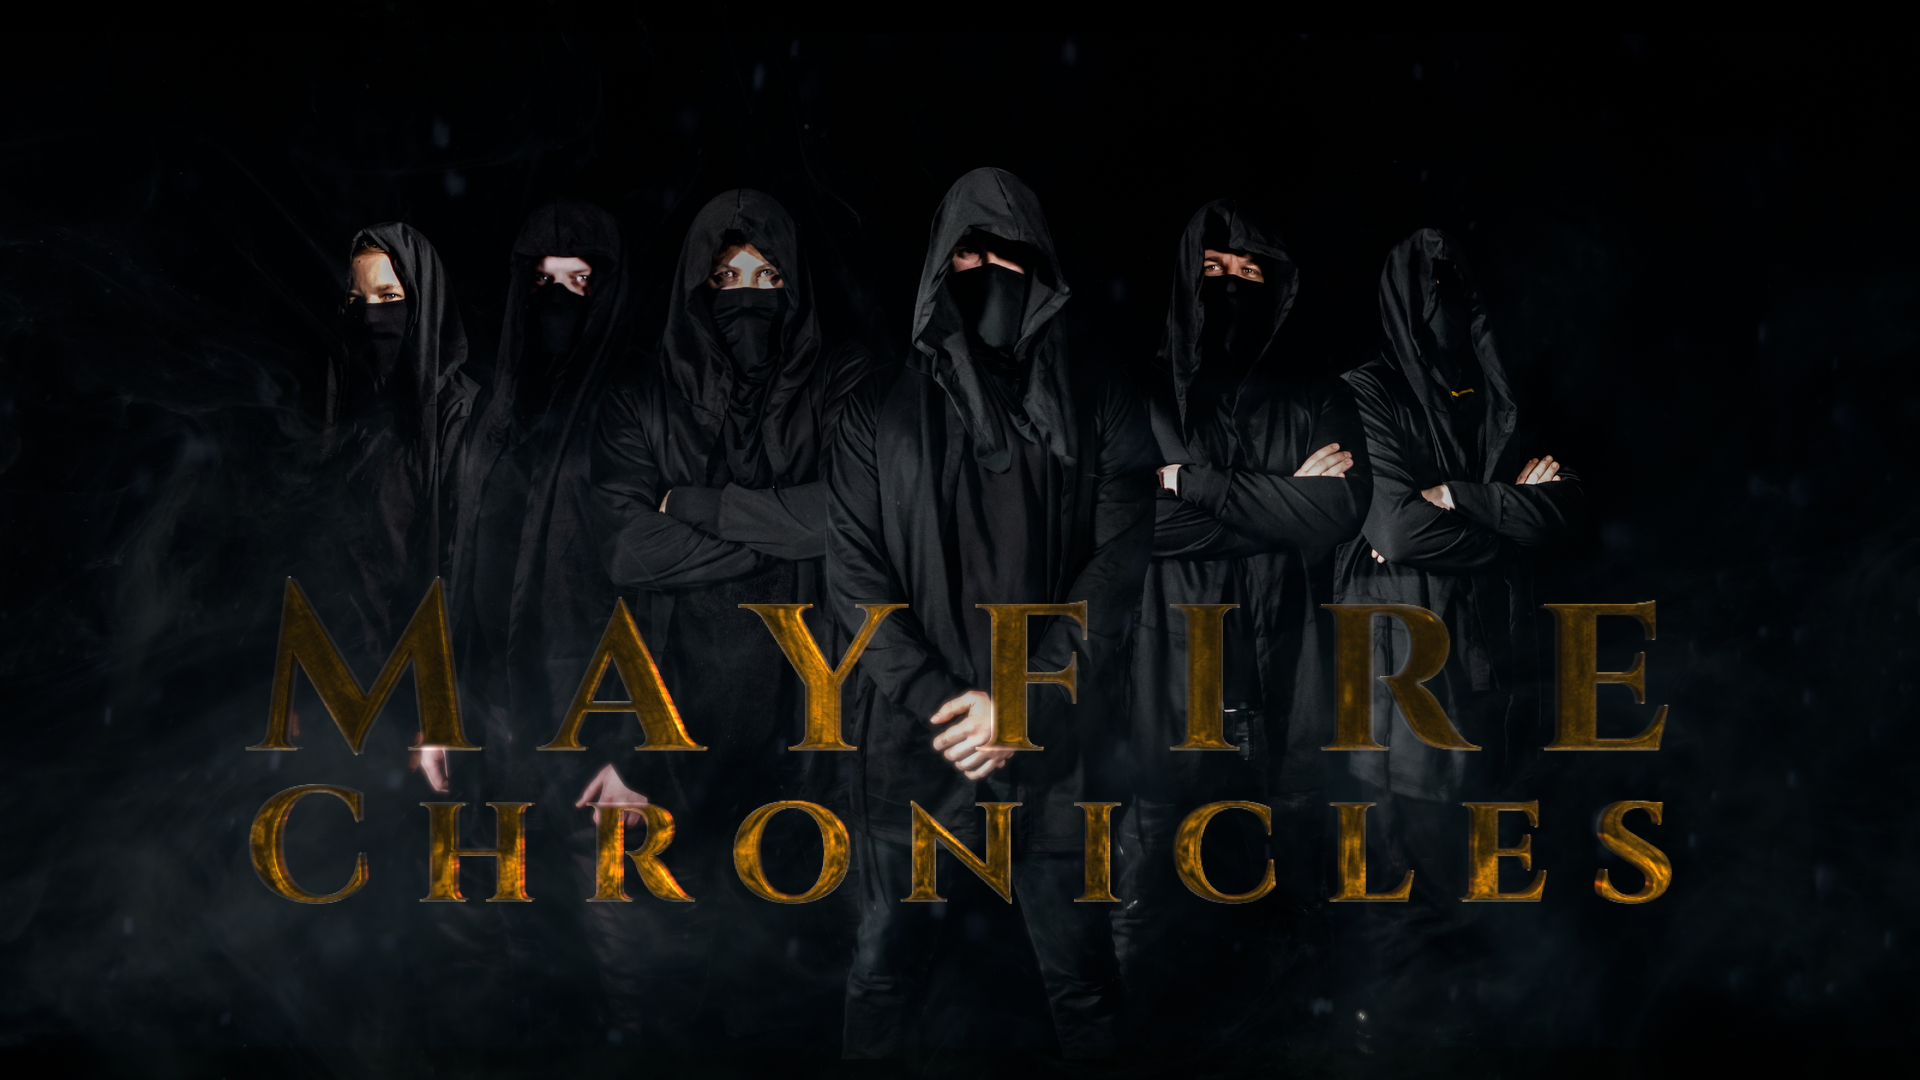 Mayfire Chronicles